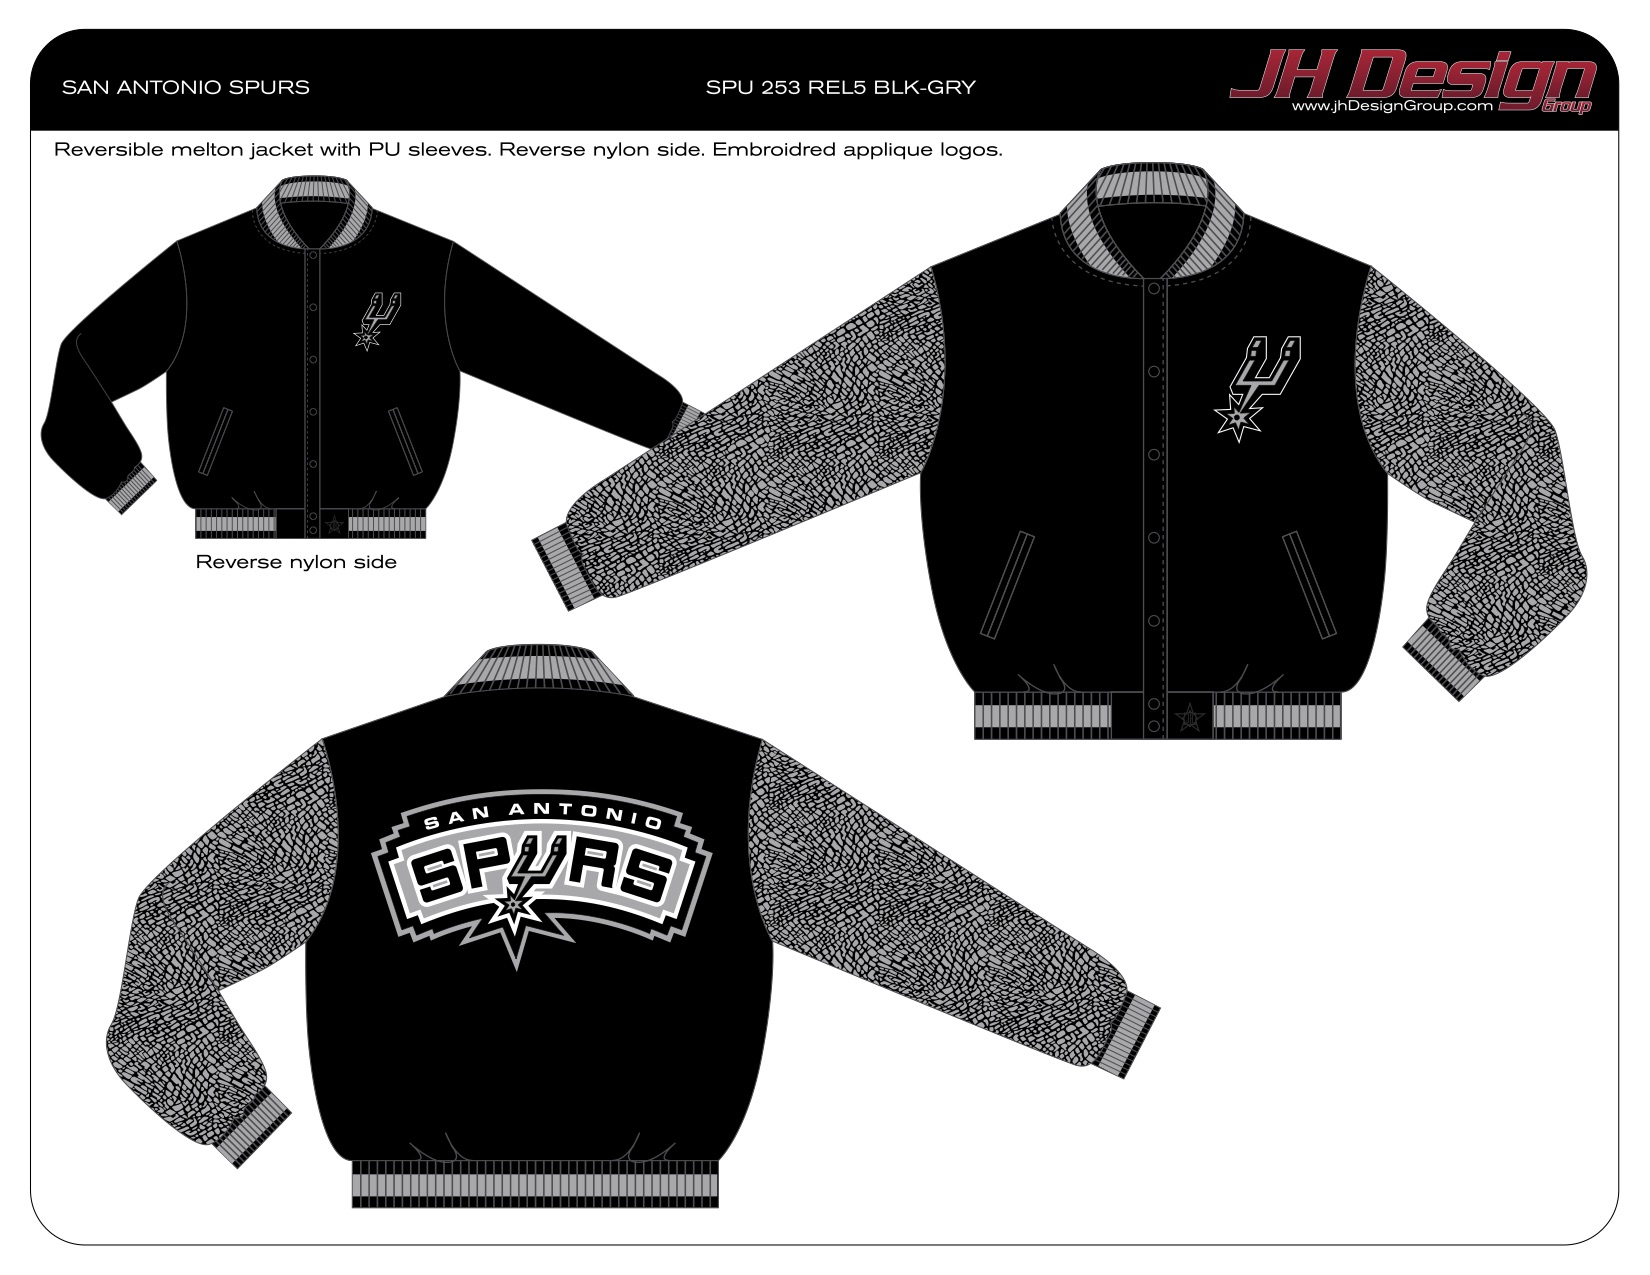 SPU 253 REL5 BLK-GRY